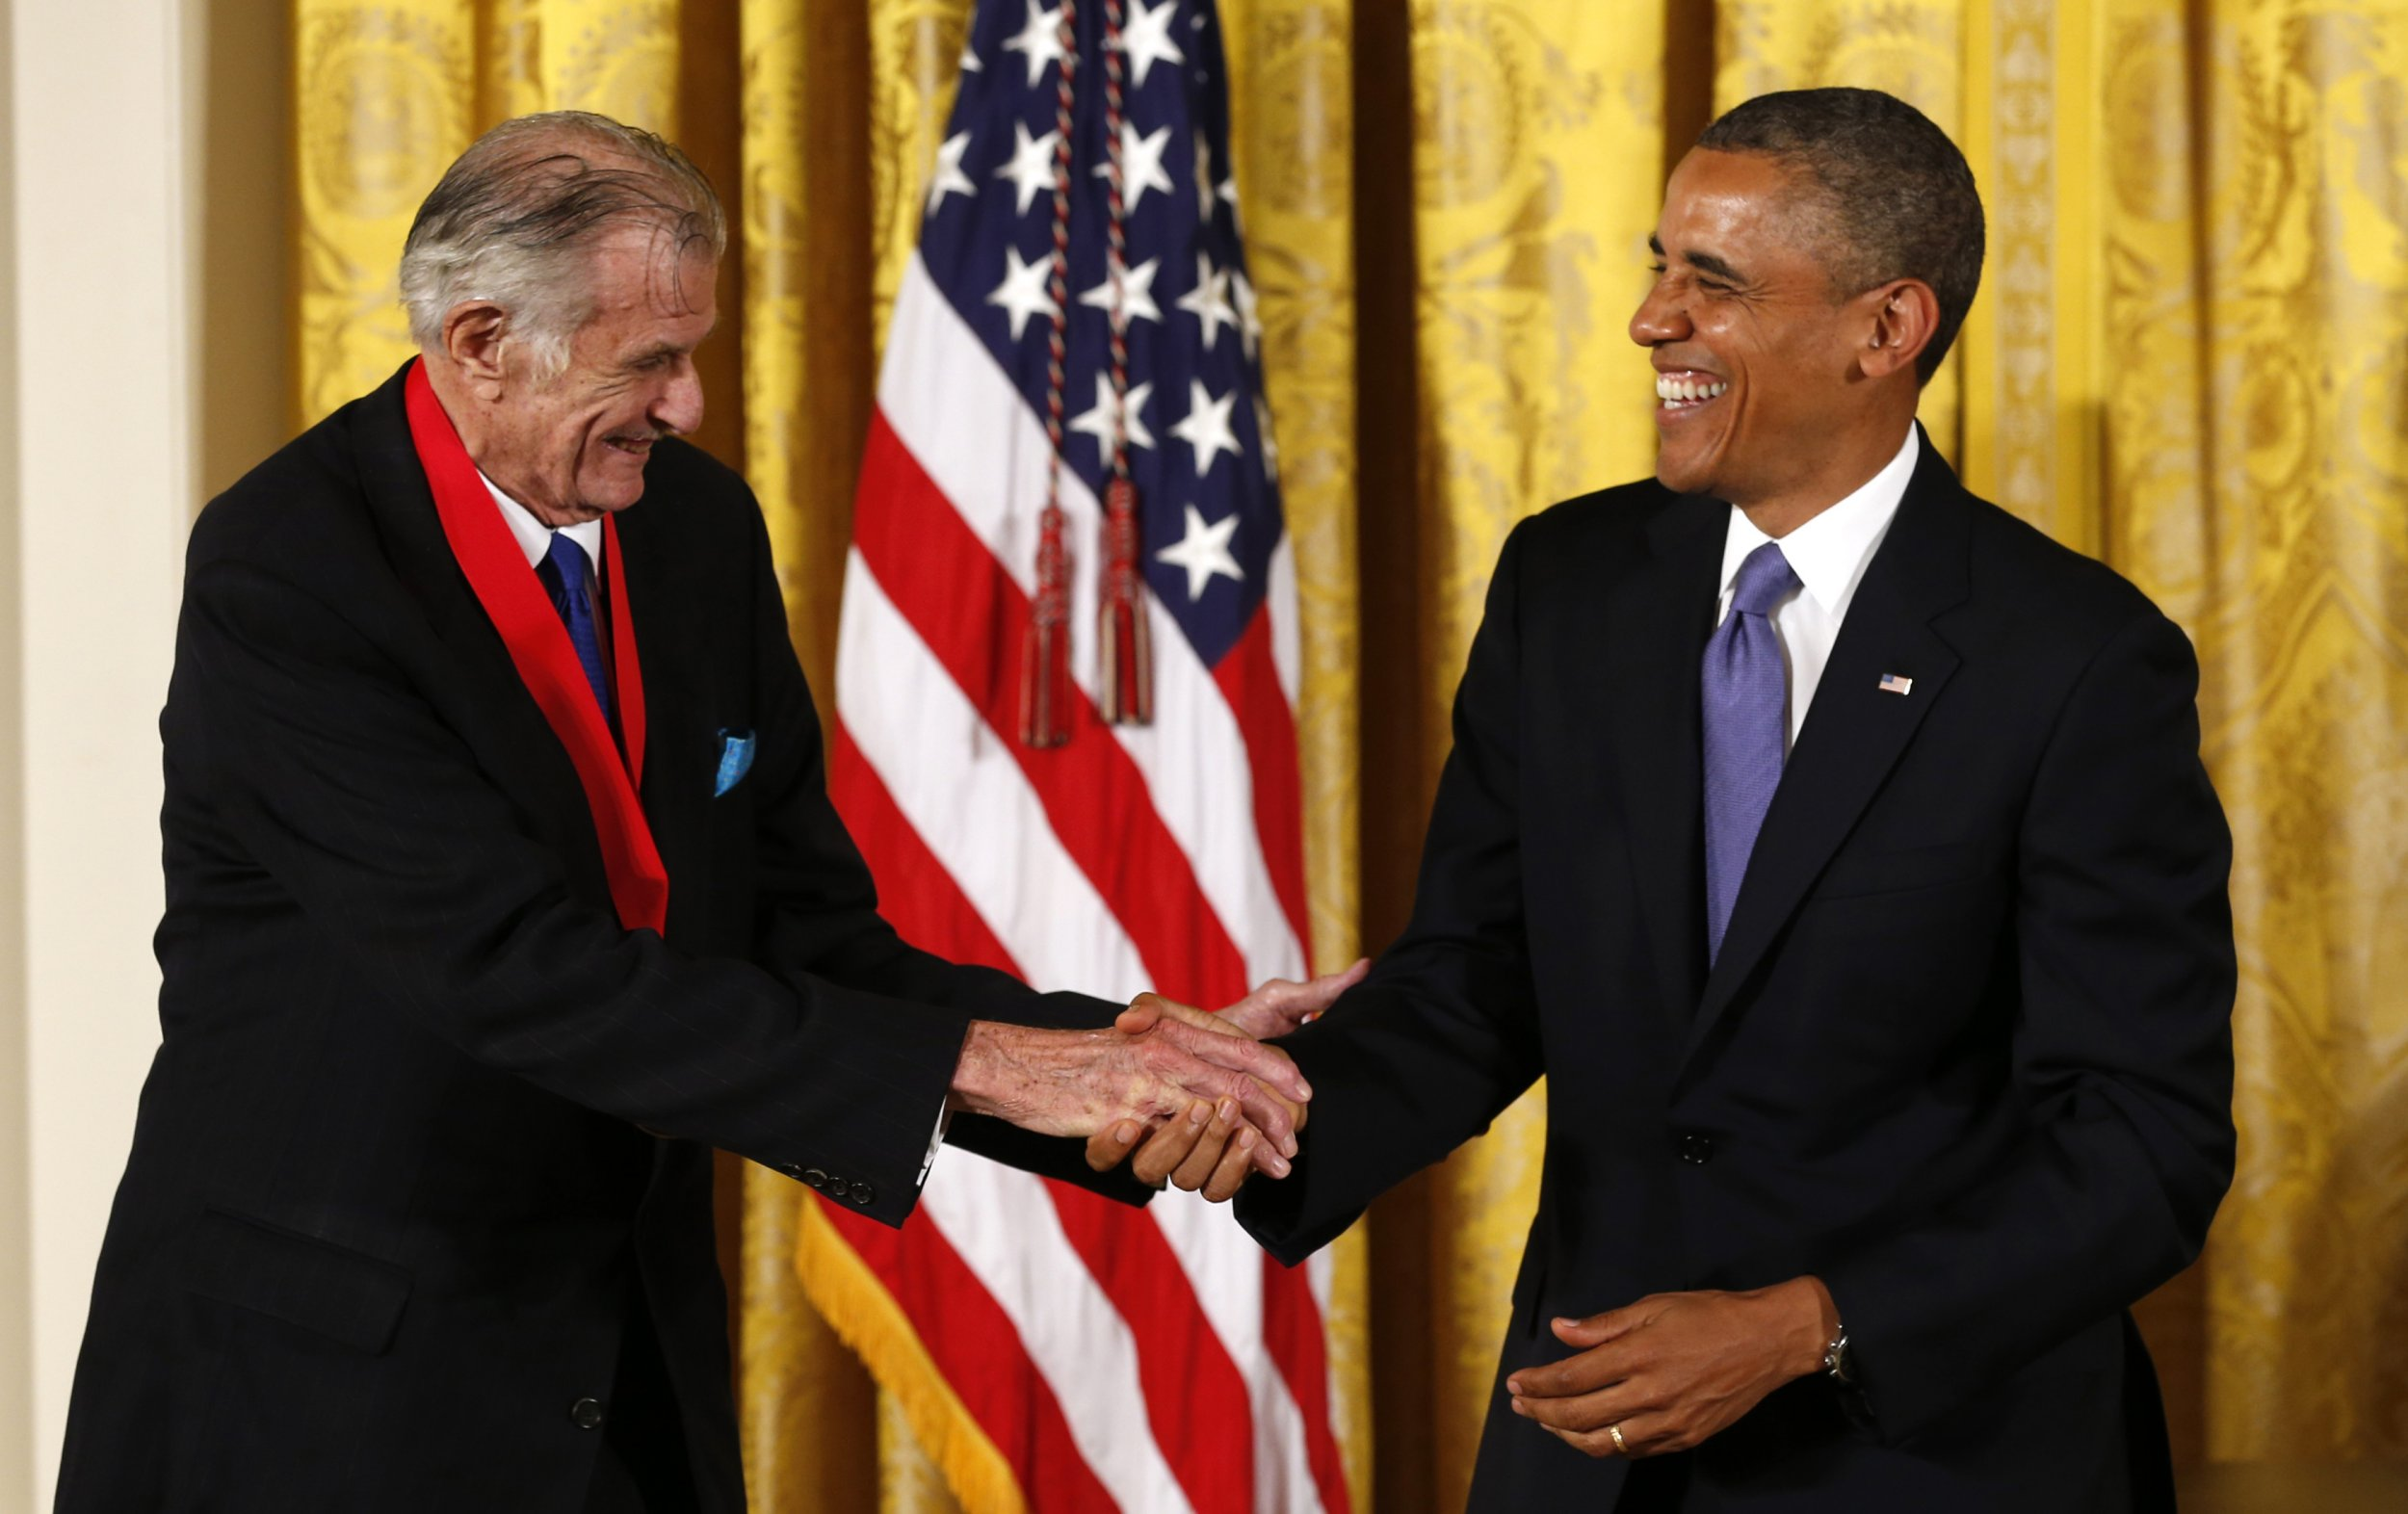 Frank Deford, left, with 44th President of the United States Barack Obama.